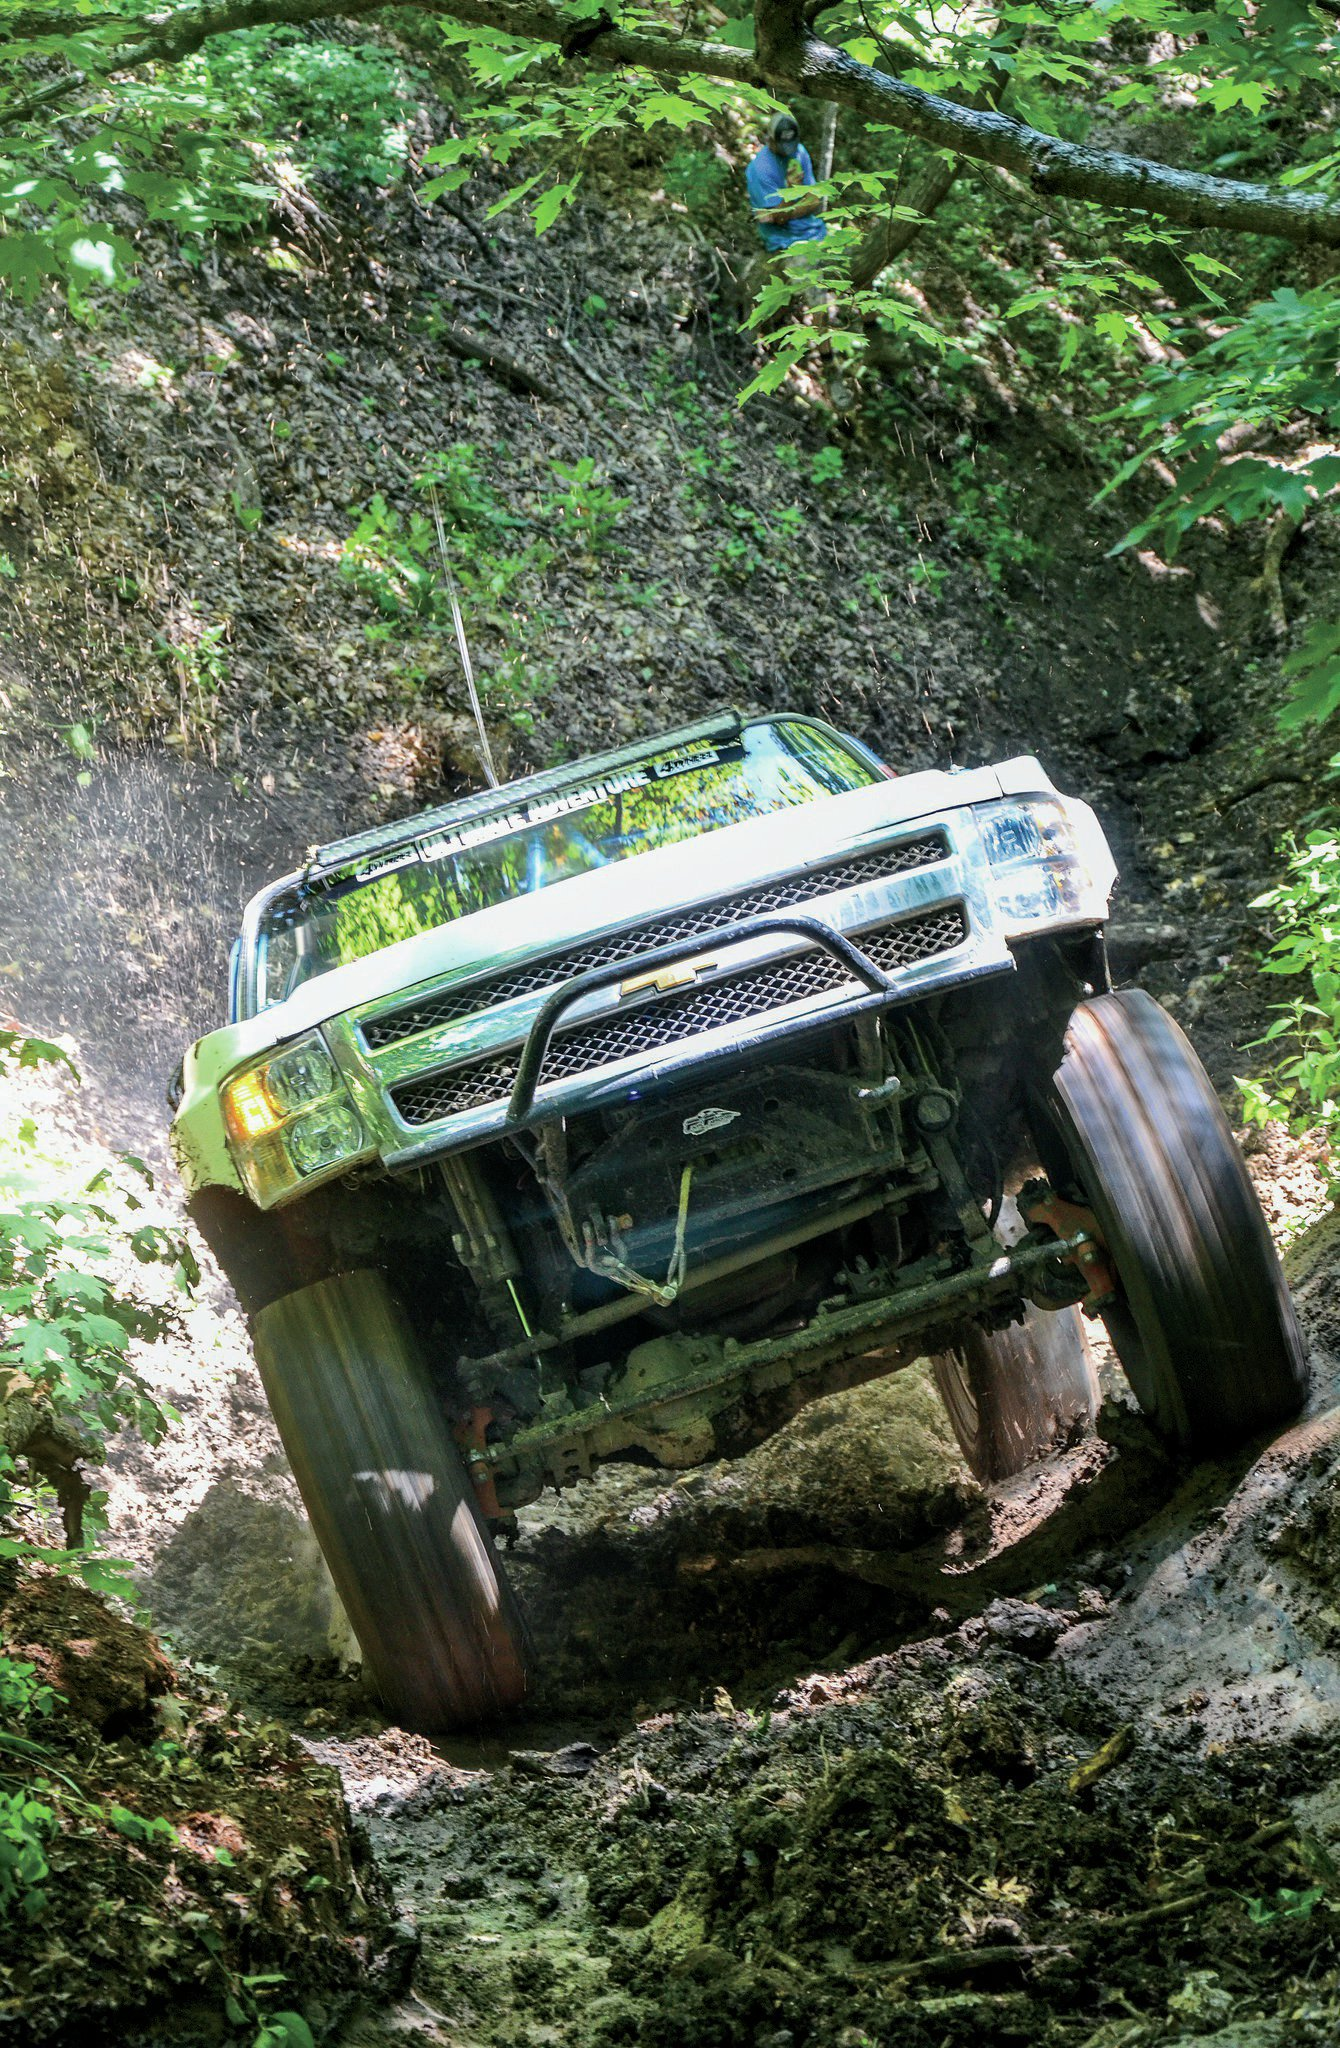 Wouldn't it be nice if this image came with sounds that went along with the action? Trying to use words to convey the volume coming out of Kevin Stearn's '83 Chevy Blazer would be tough, but trust us when we say it was sweet.